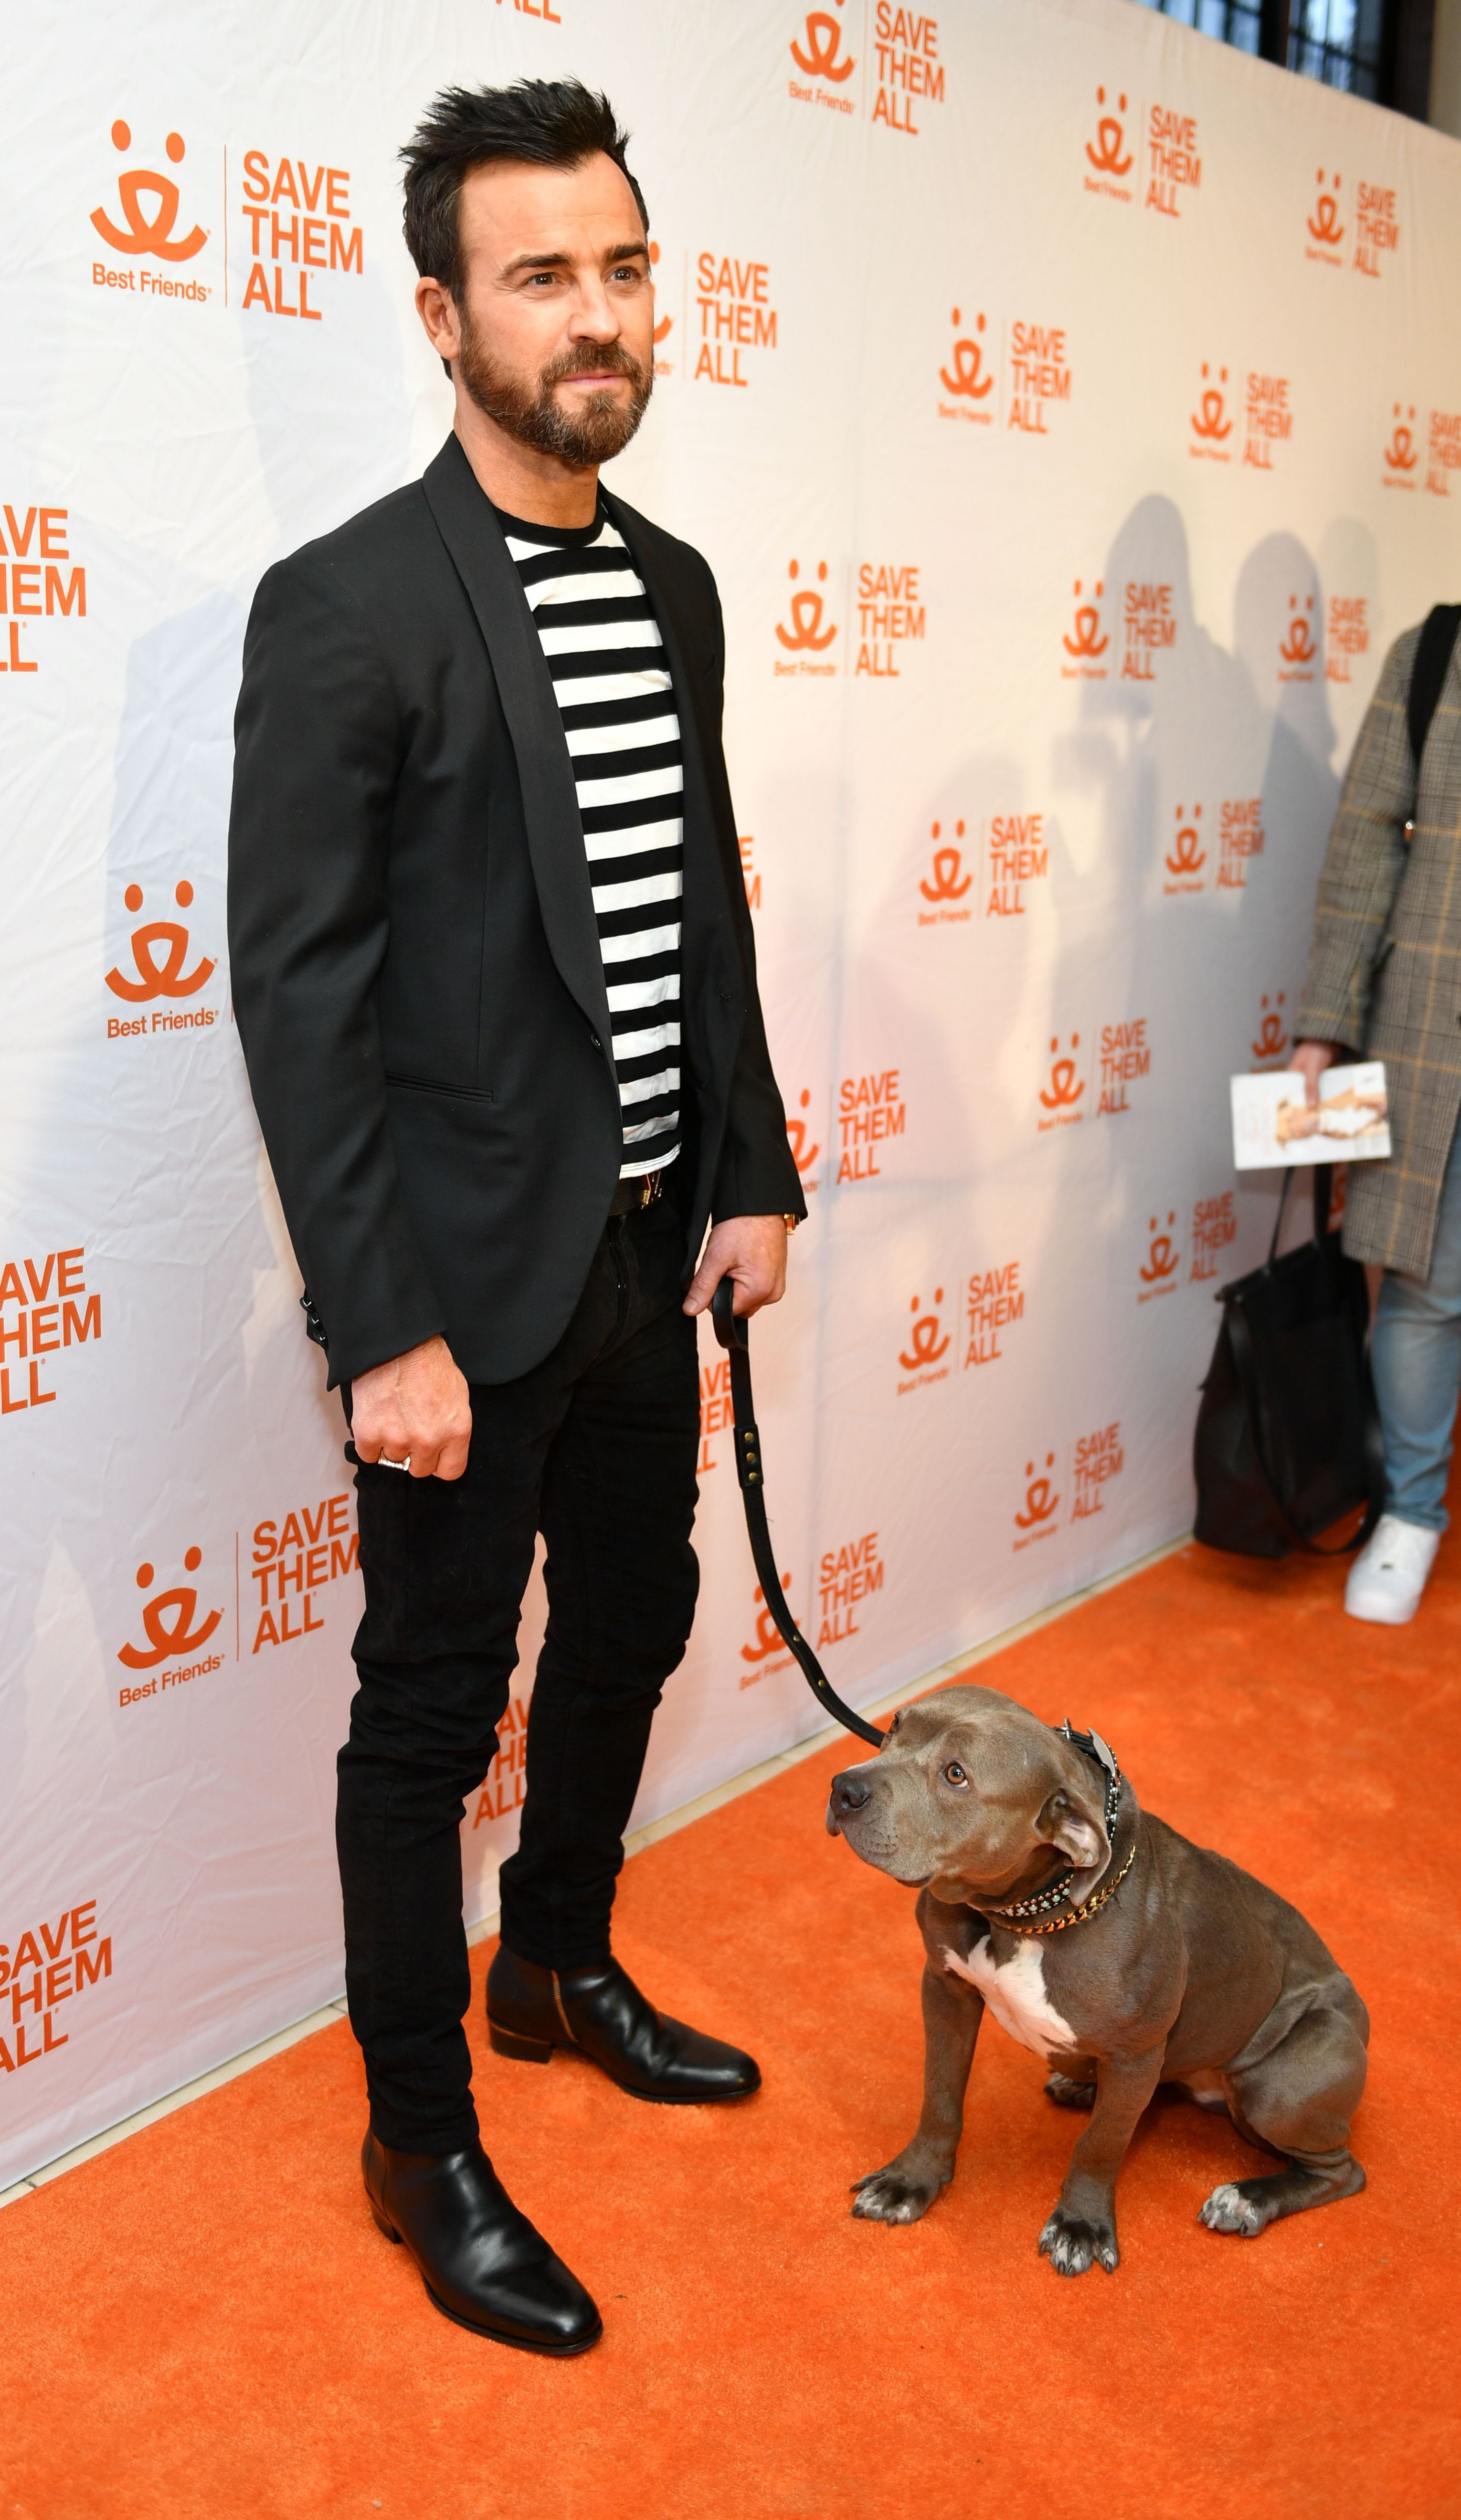 Justin Theroux attends the Animal Society Best Friends Benefit in New York City on April 2, 2019.